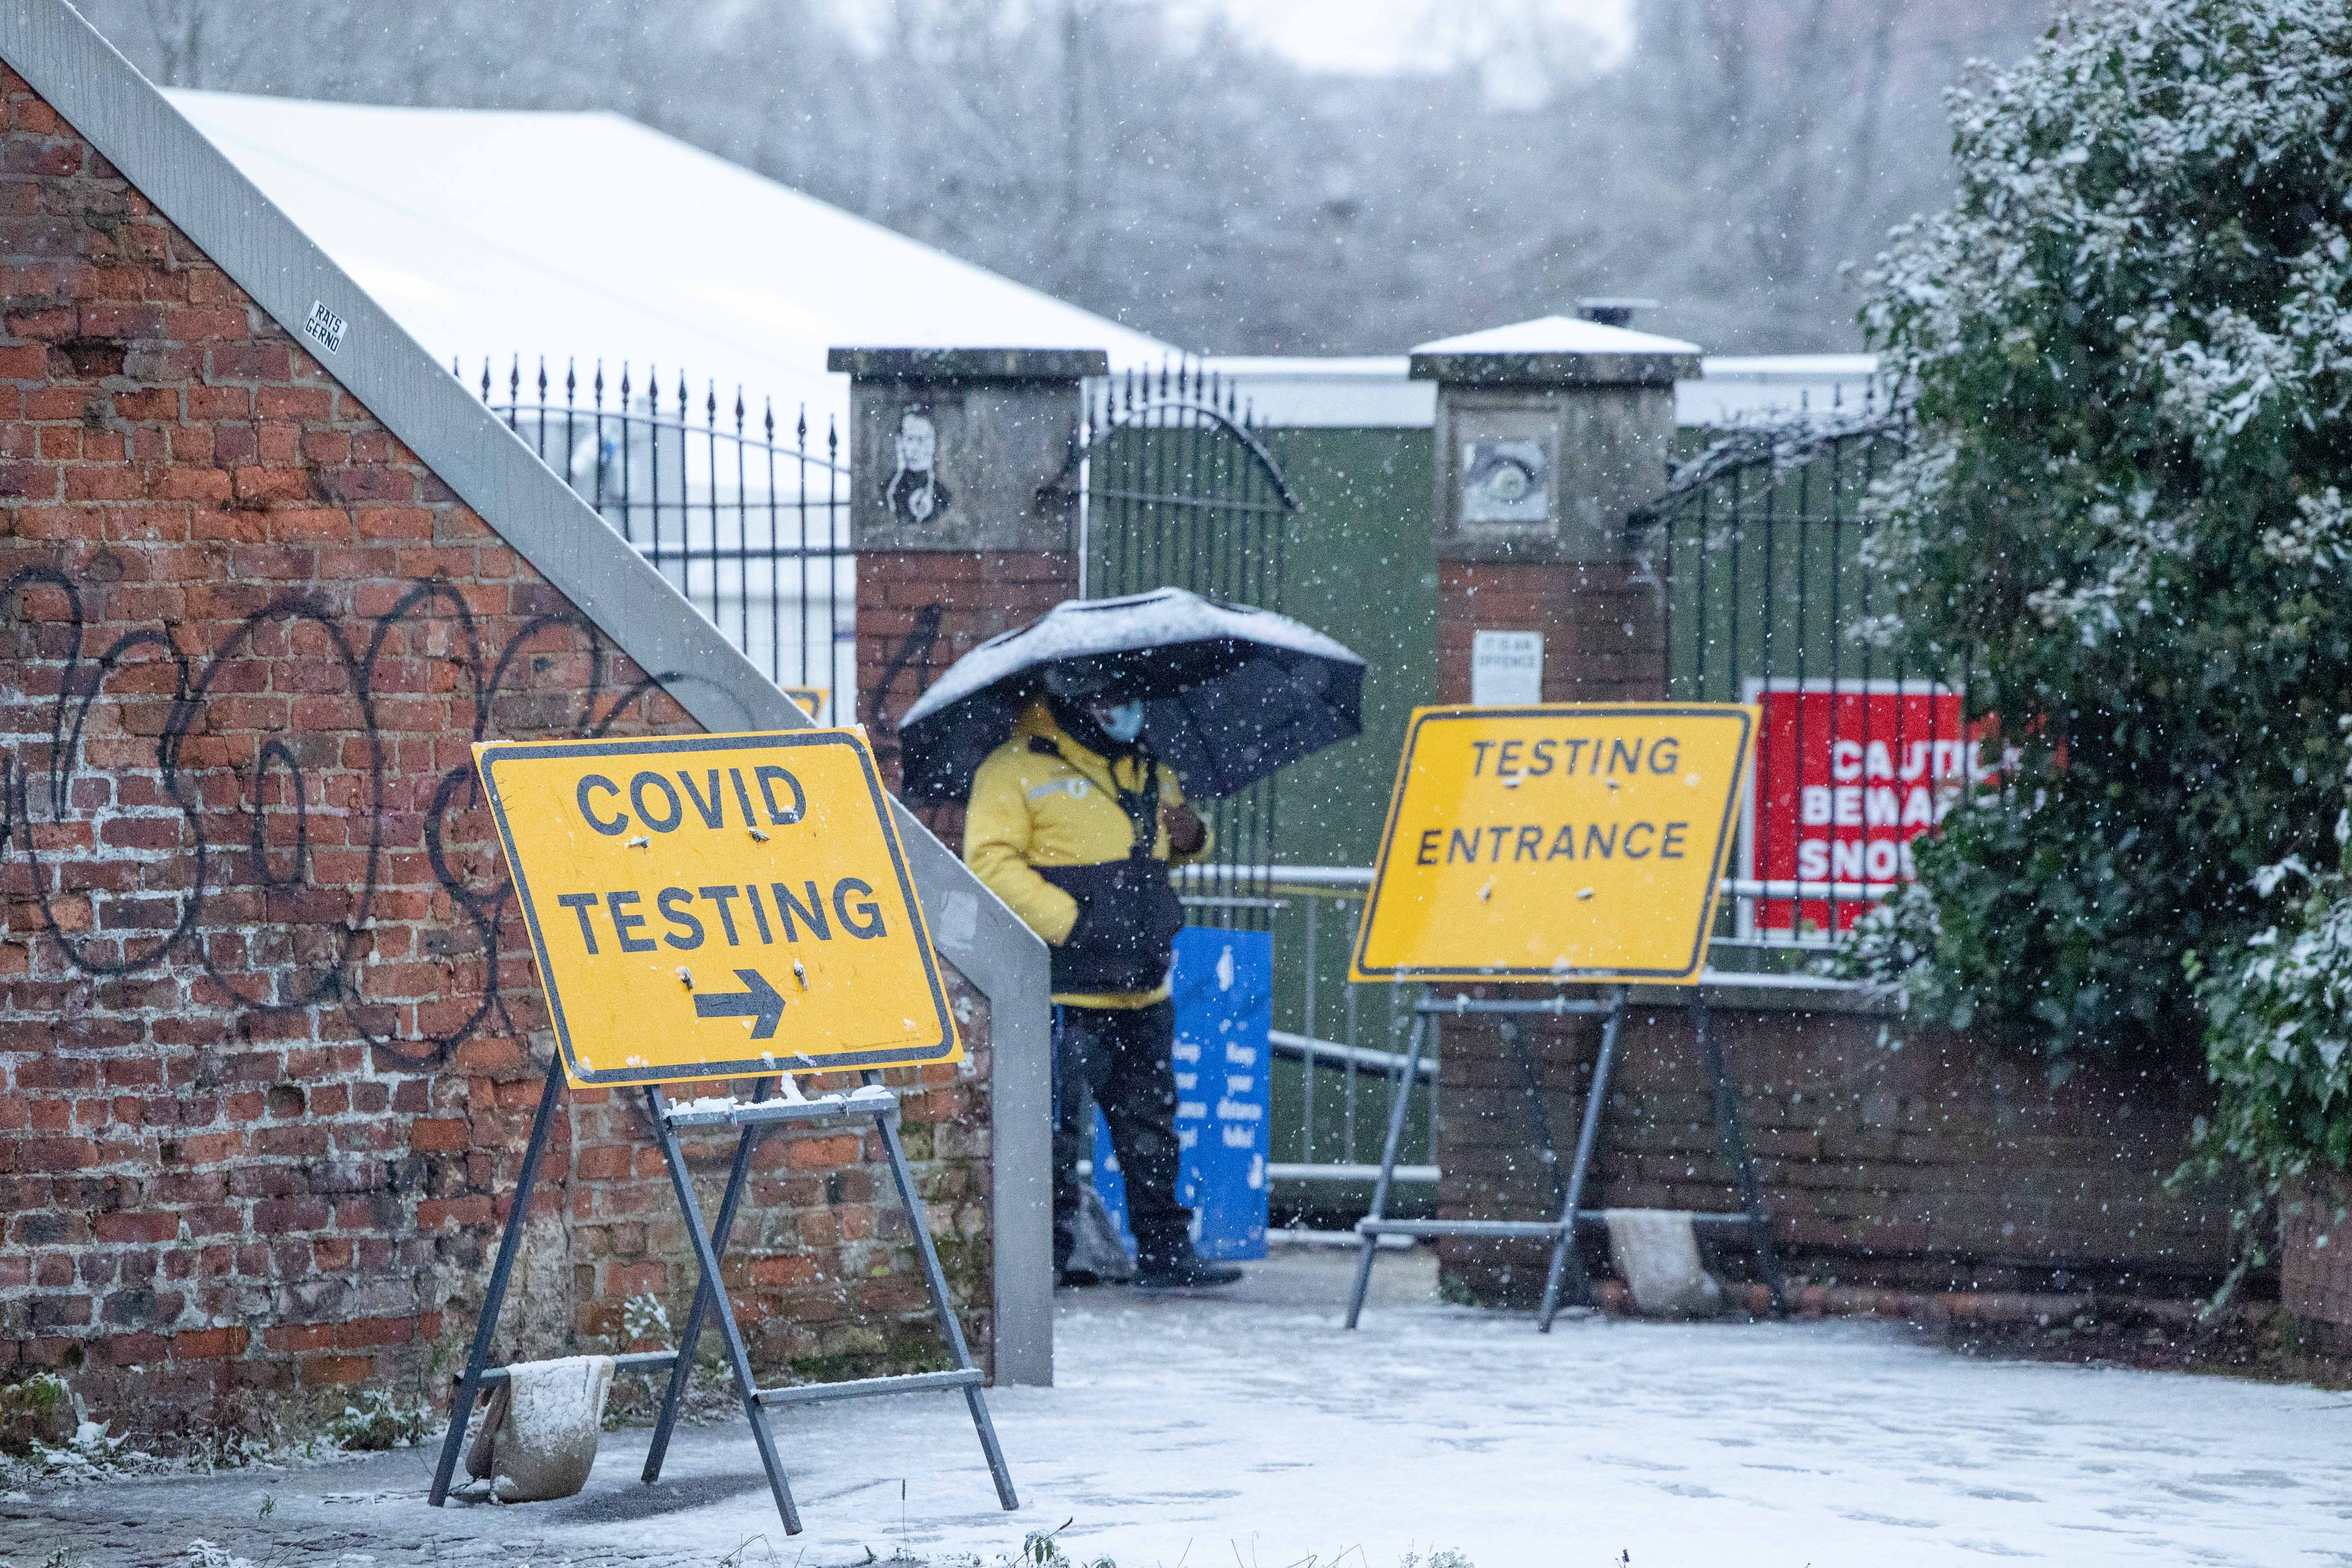 A COVID-19 testing centre continues to operate in Ancoats, Manchester city centre, as snow hits the UK. Tuesday 29th December 2020.  (Photo by Pat Scaasi/MI News/NurPhoto via Getty Images)